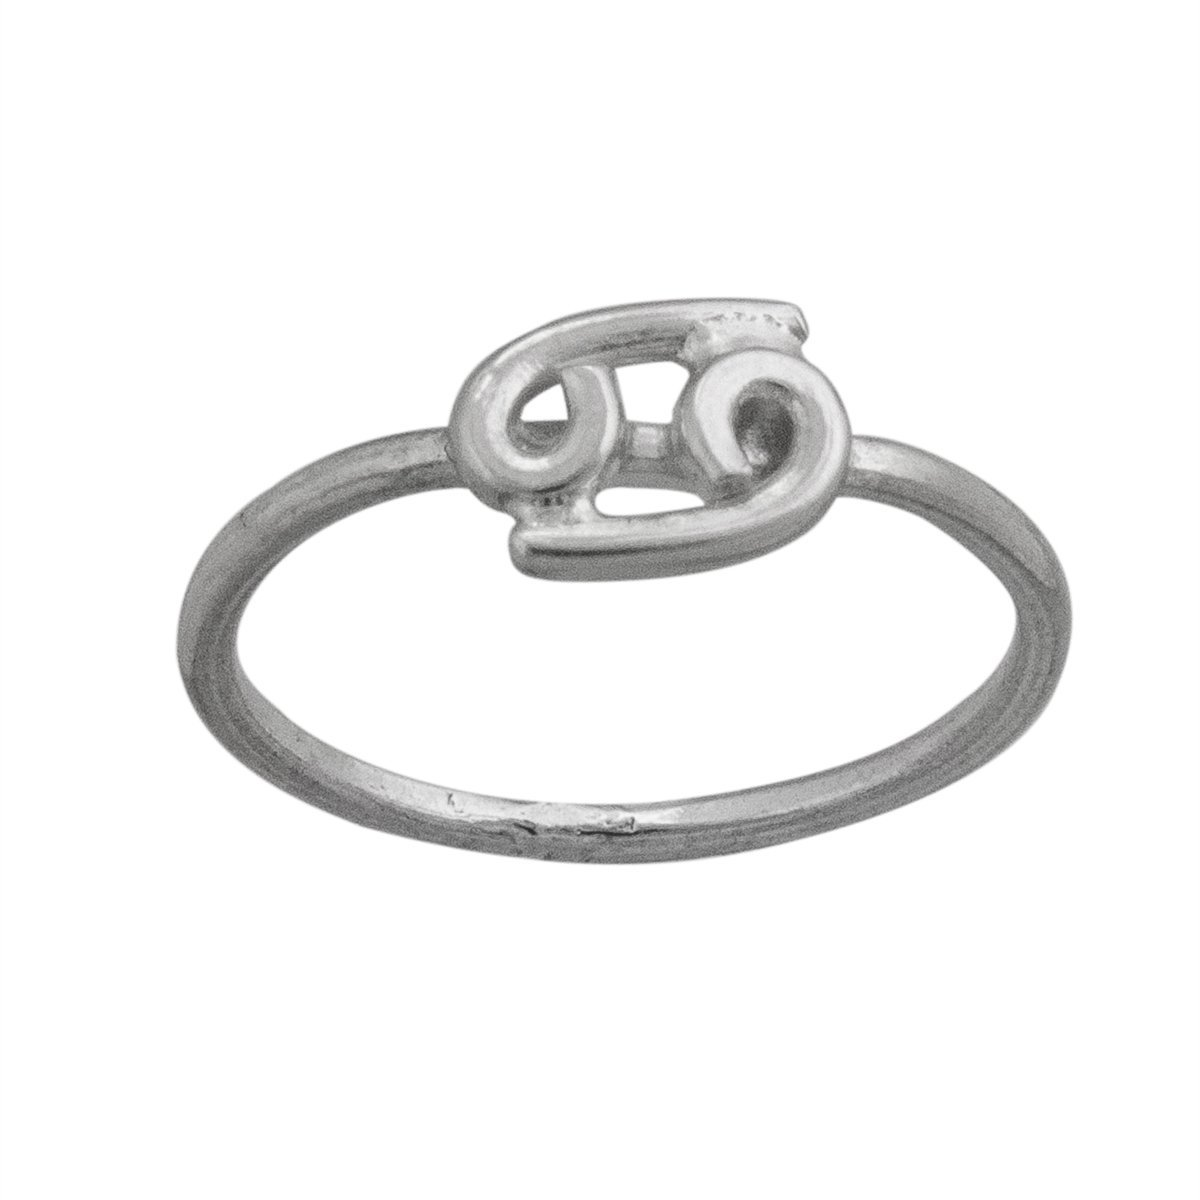 sterling-silver-cancer-ring - 1 - Charles Albert Inc